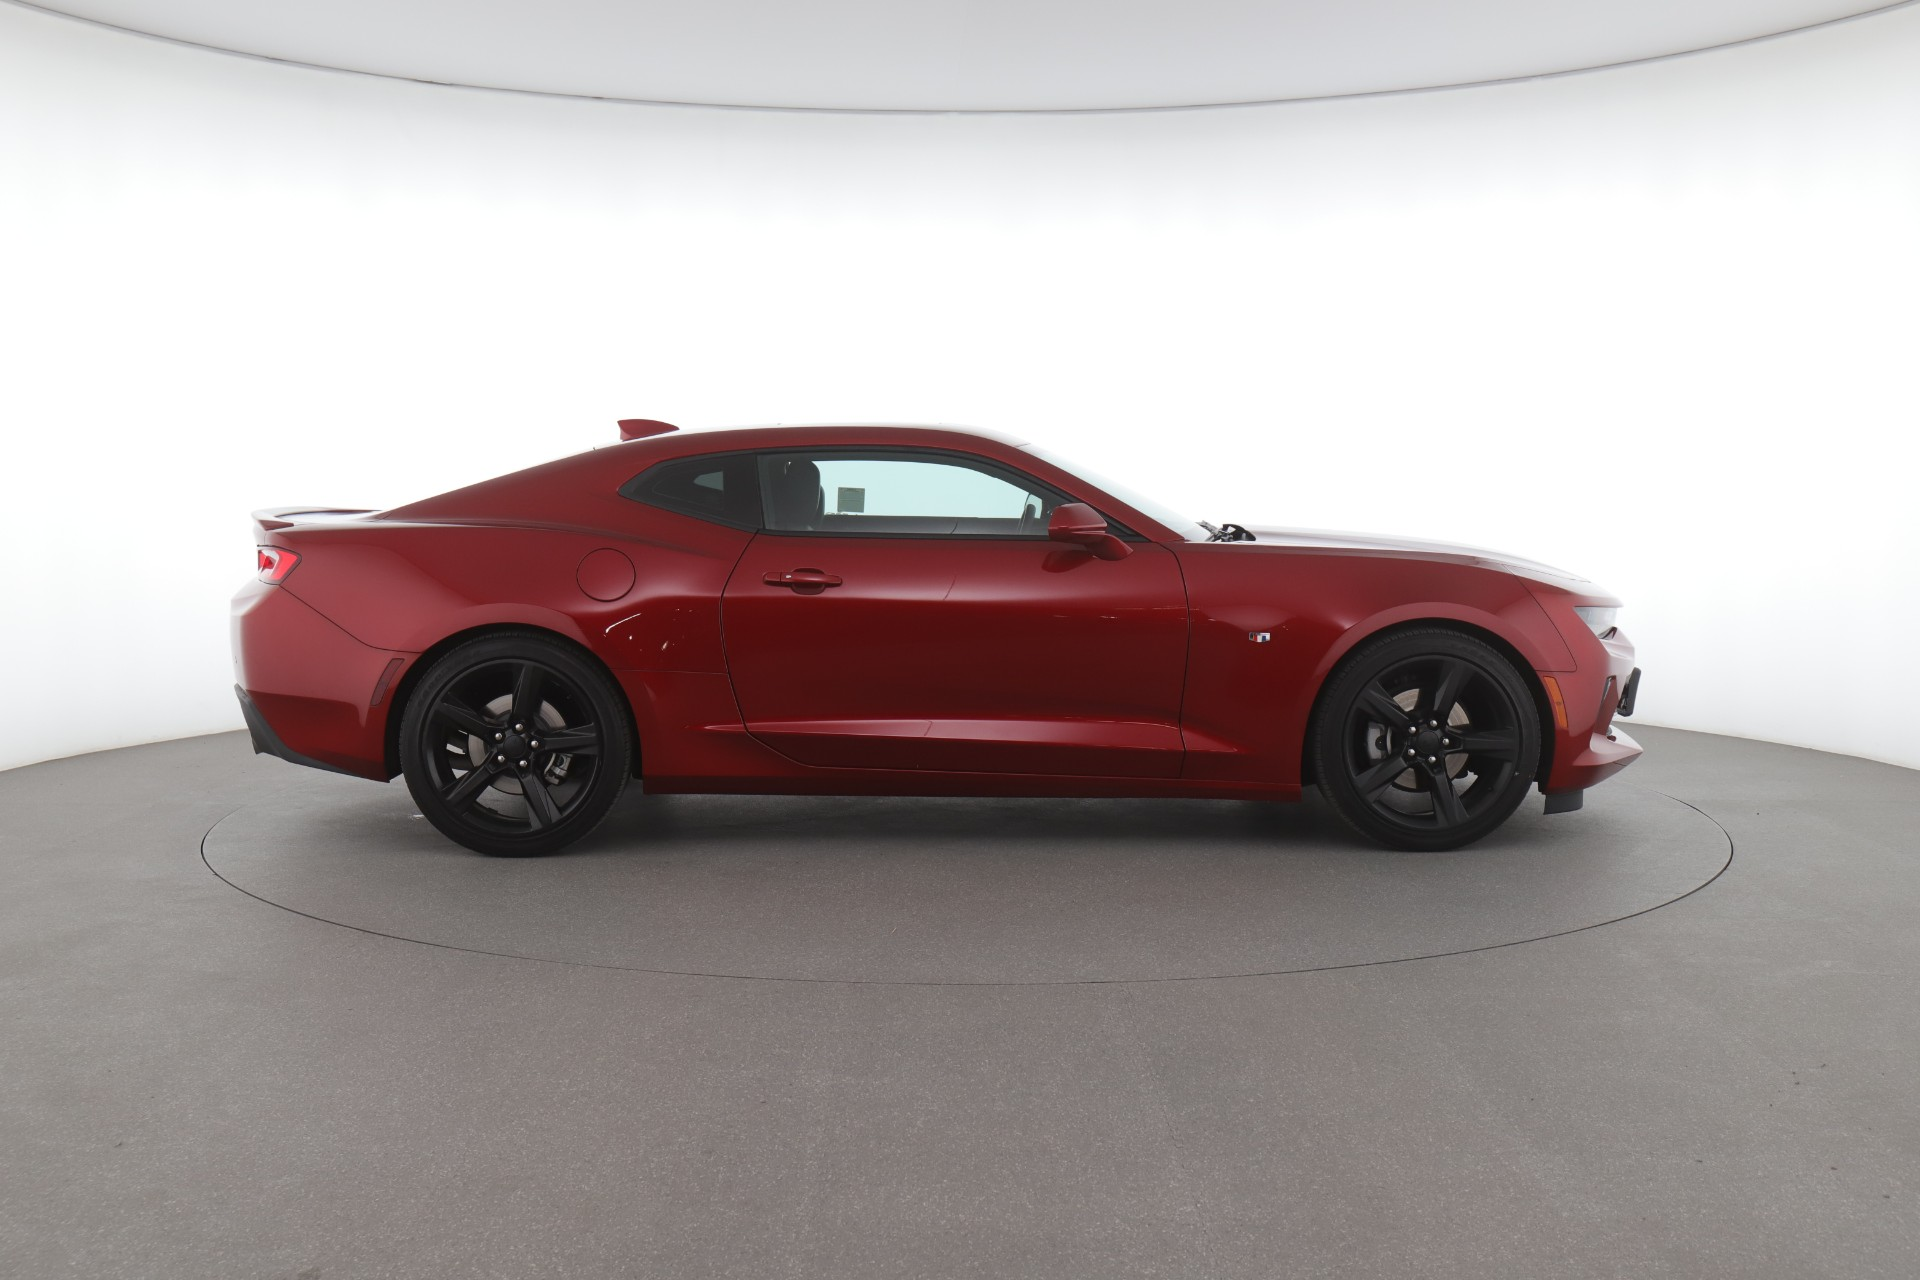 How Much is A Used Camaro?